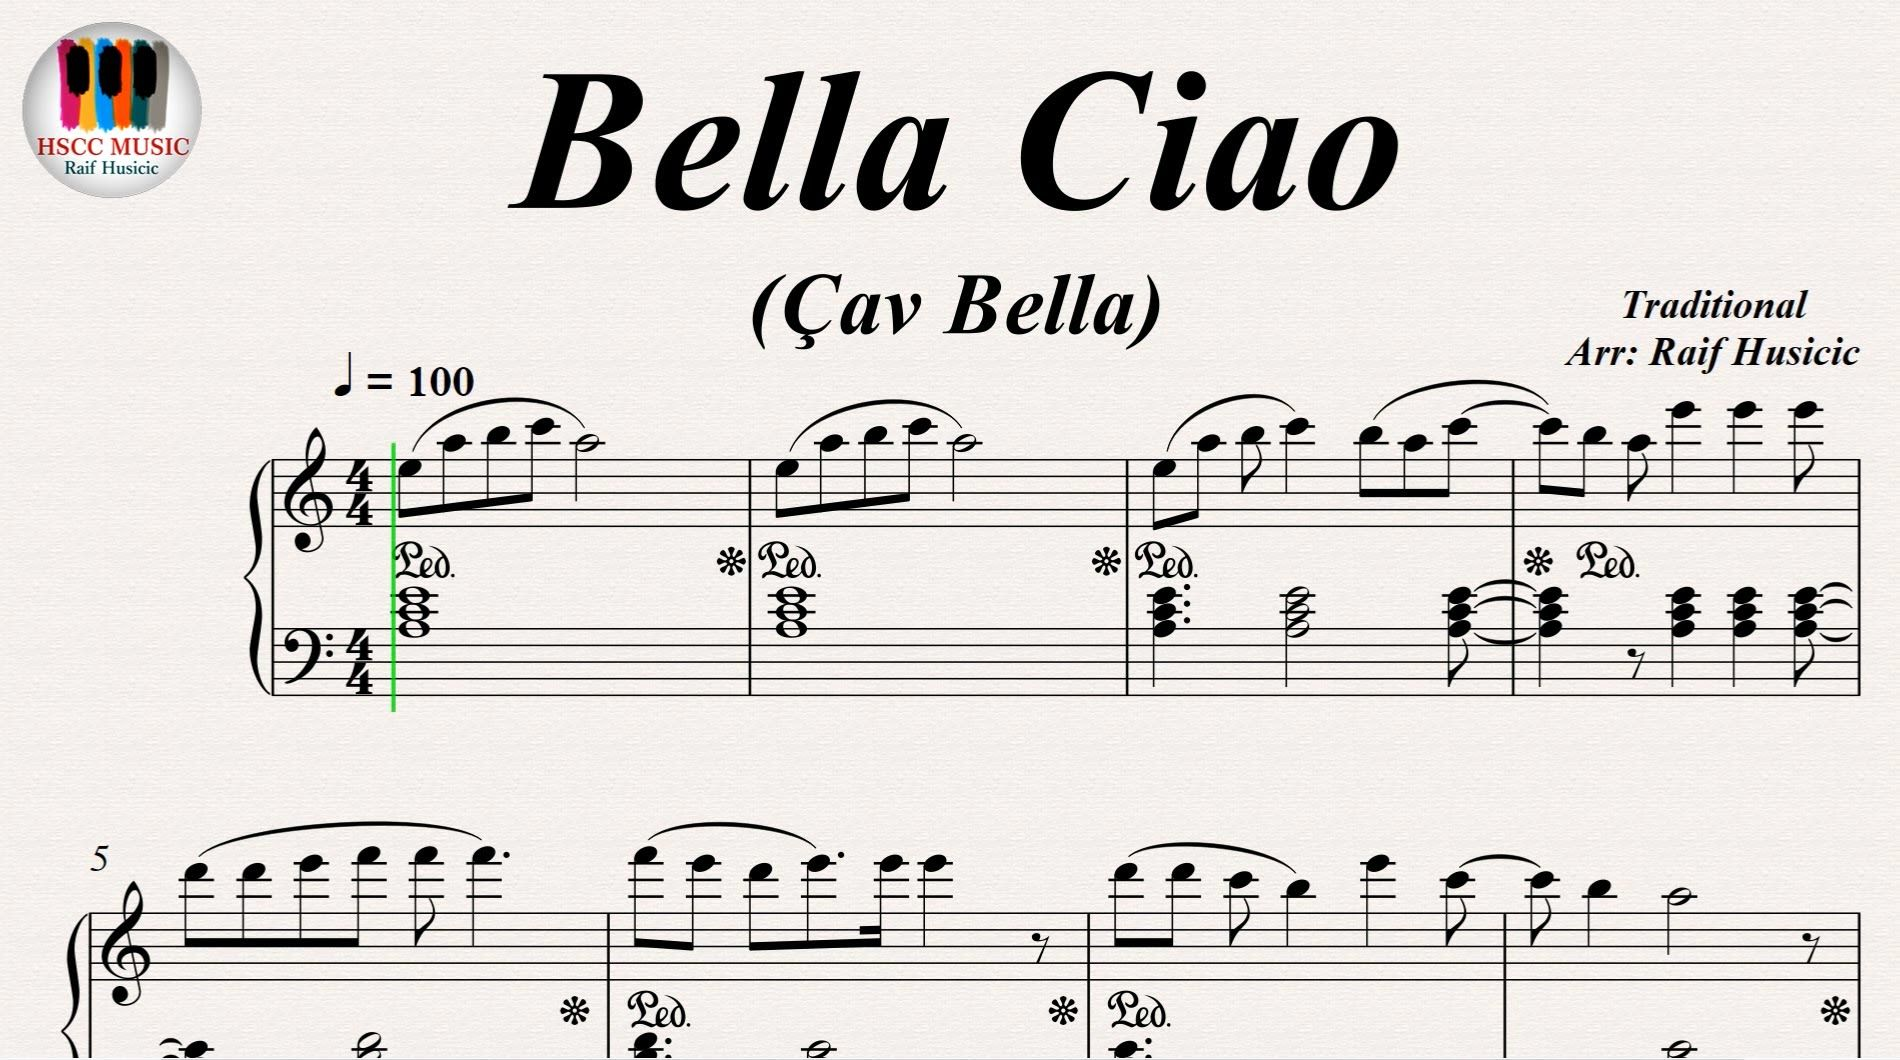 Bella Ciao Cav Bella Piano Https Youtu Be M7trymvzysq